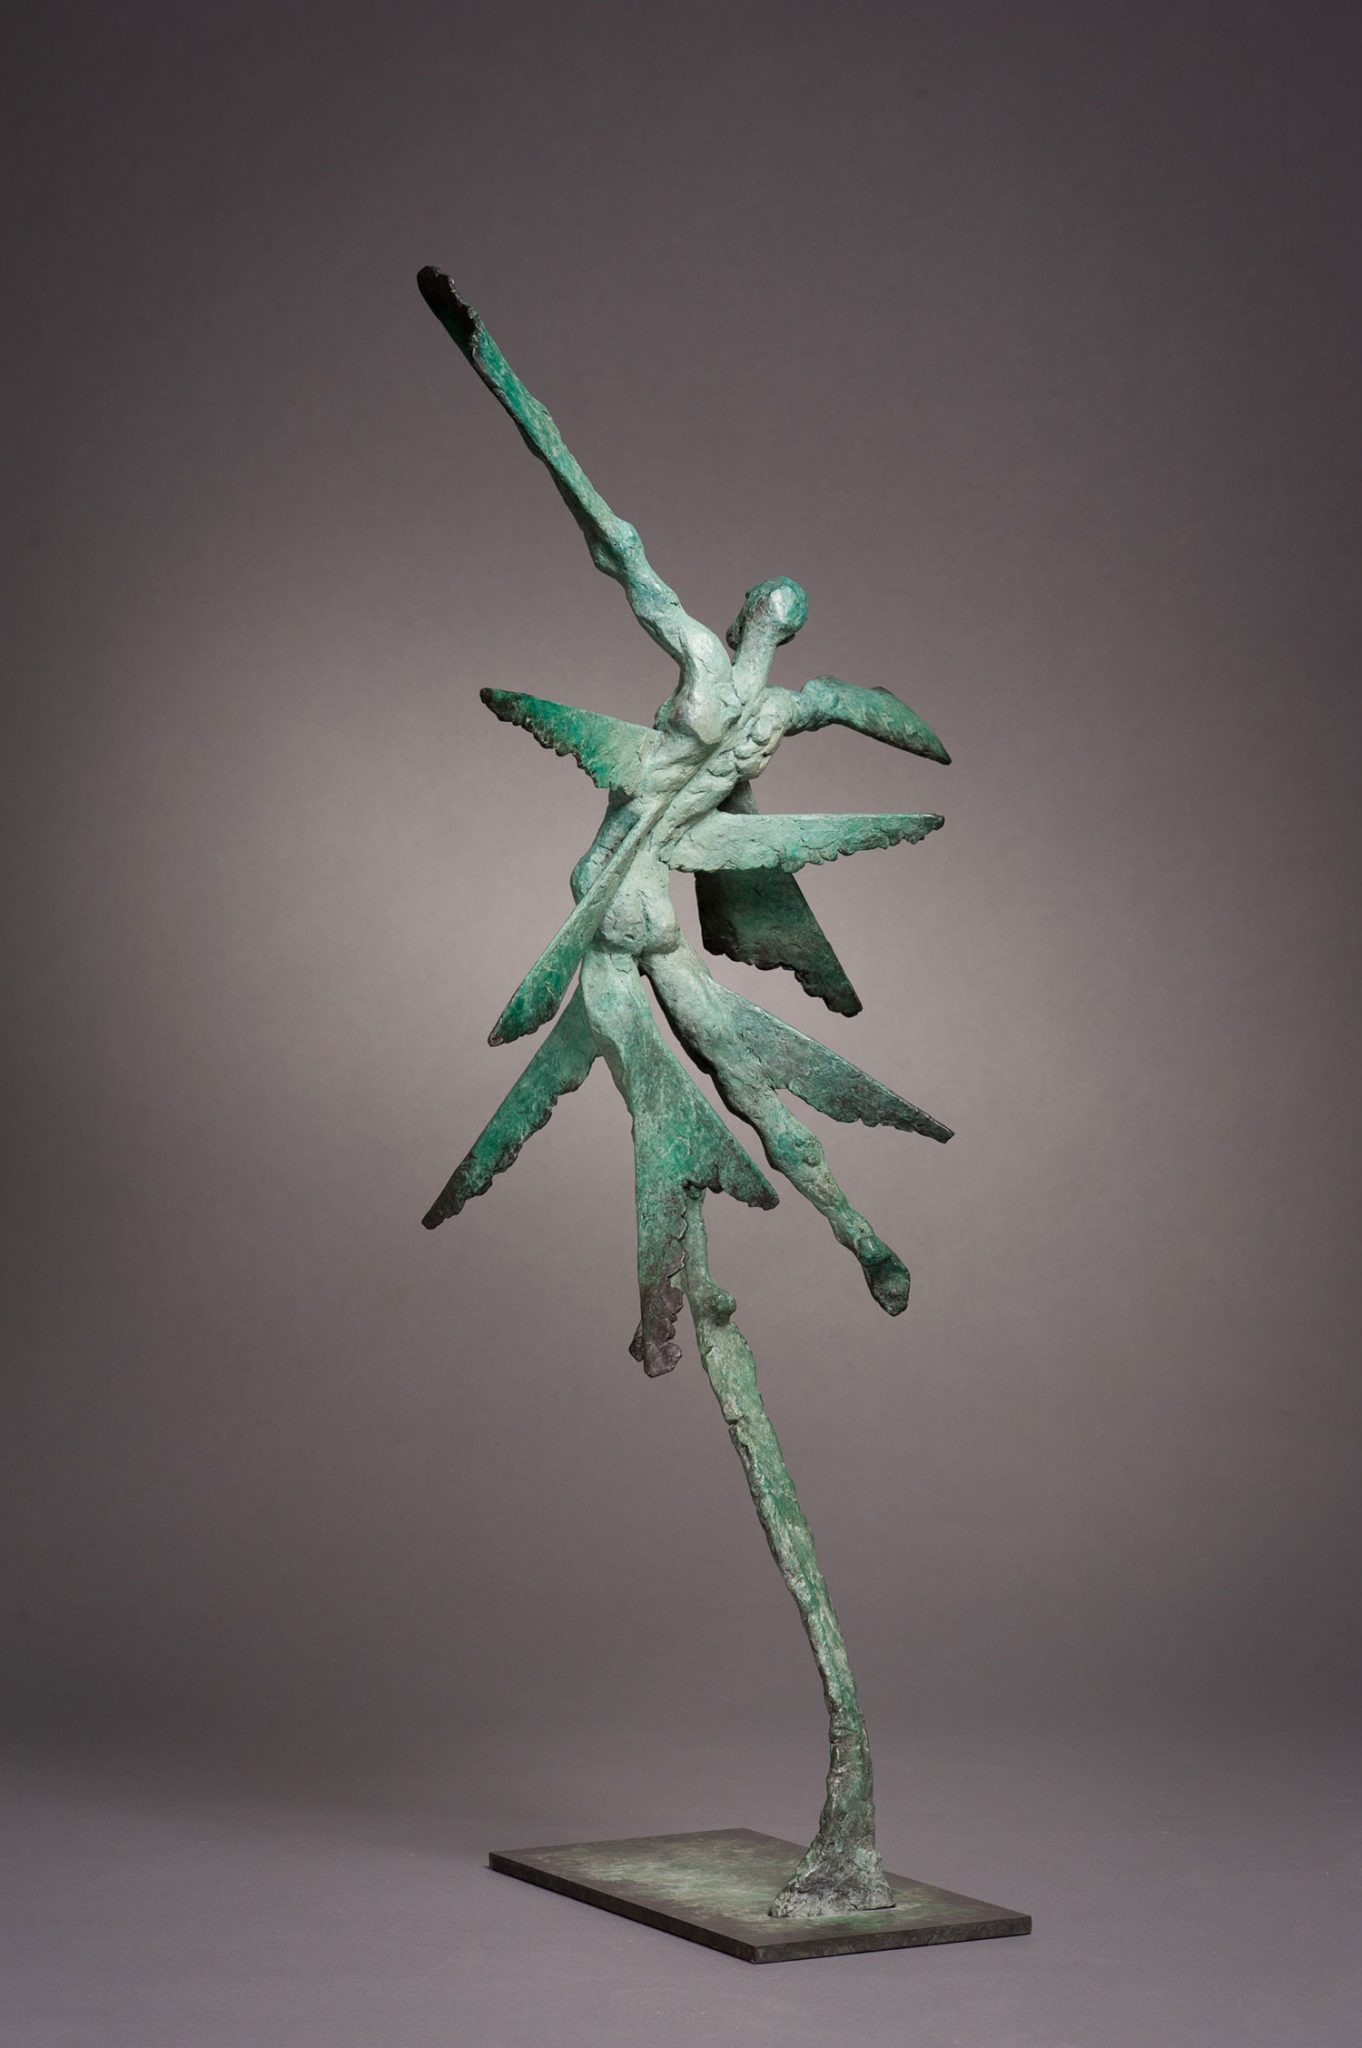 Vol d'Etincelle III. Spark III. Bronze abstract sculpture in green